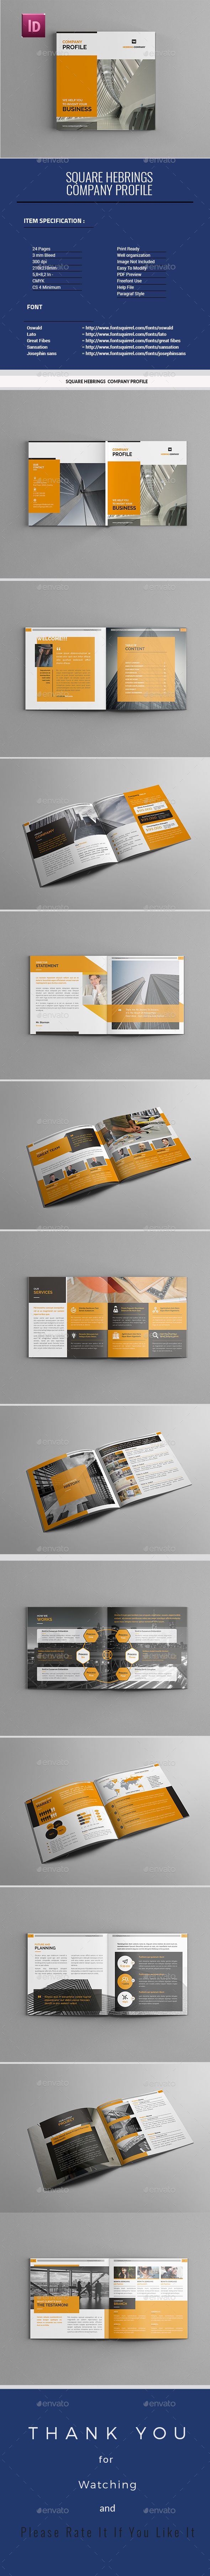 Best Company Profile Templates Images On   Brochure